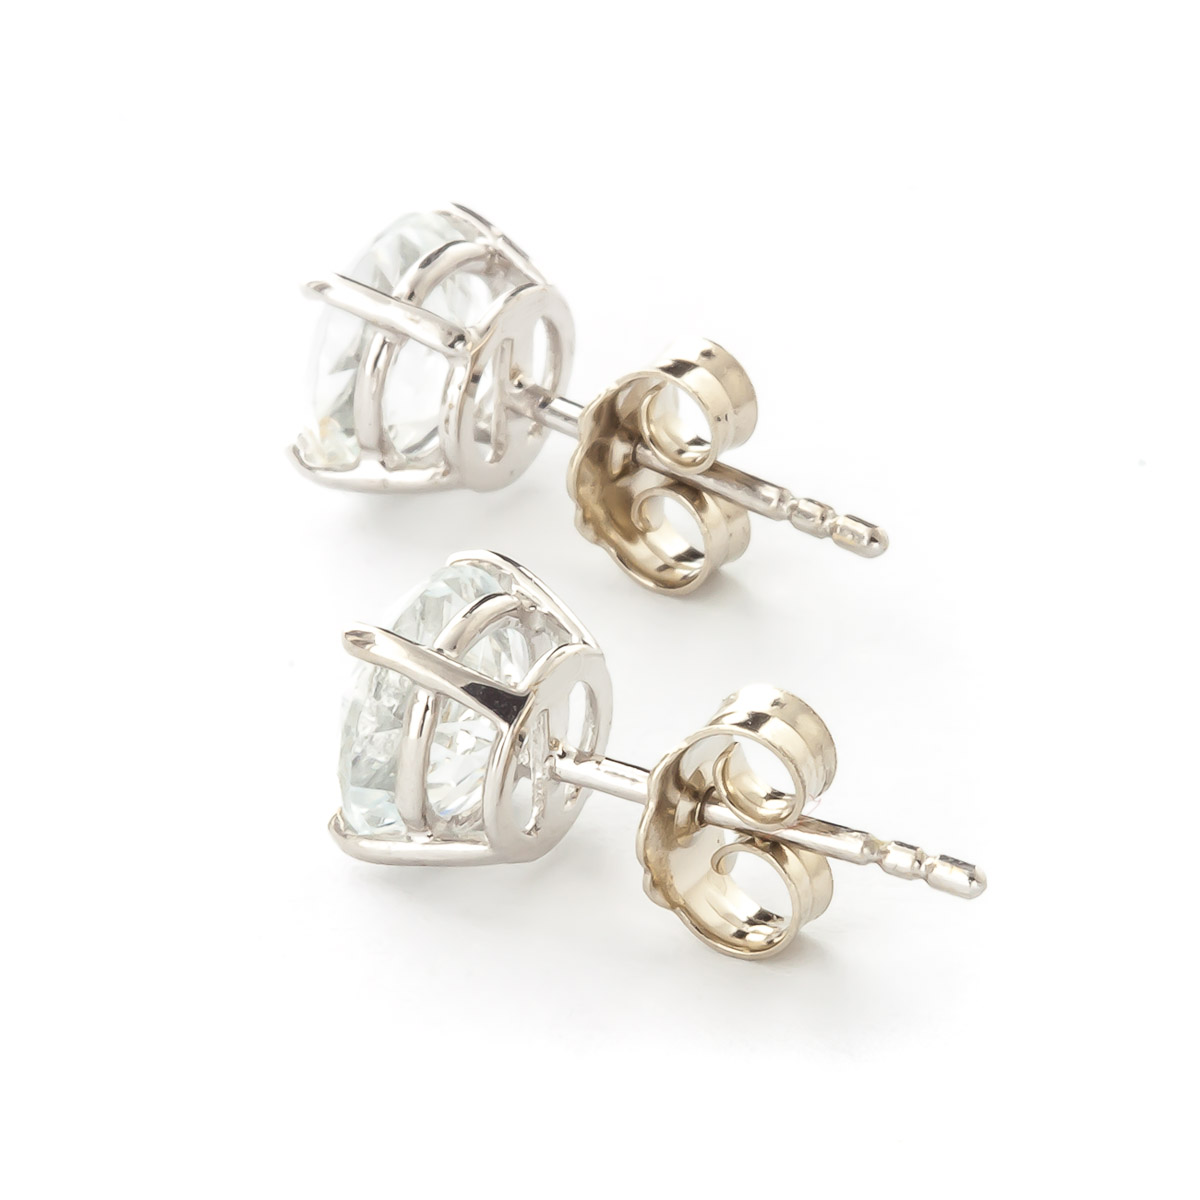 Aquamarine Stud Earrings 3.1ctw in 9ct White Gold